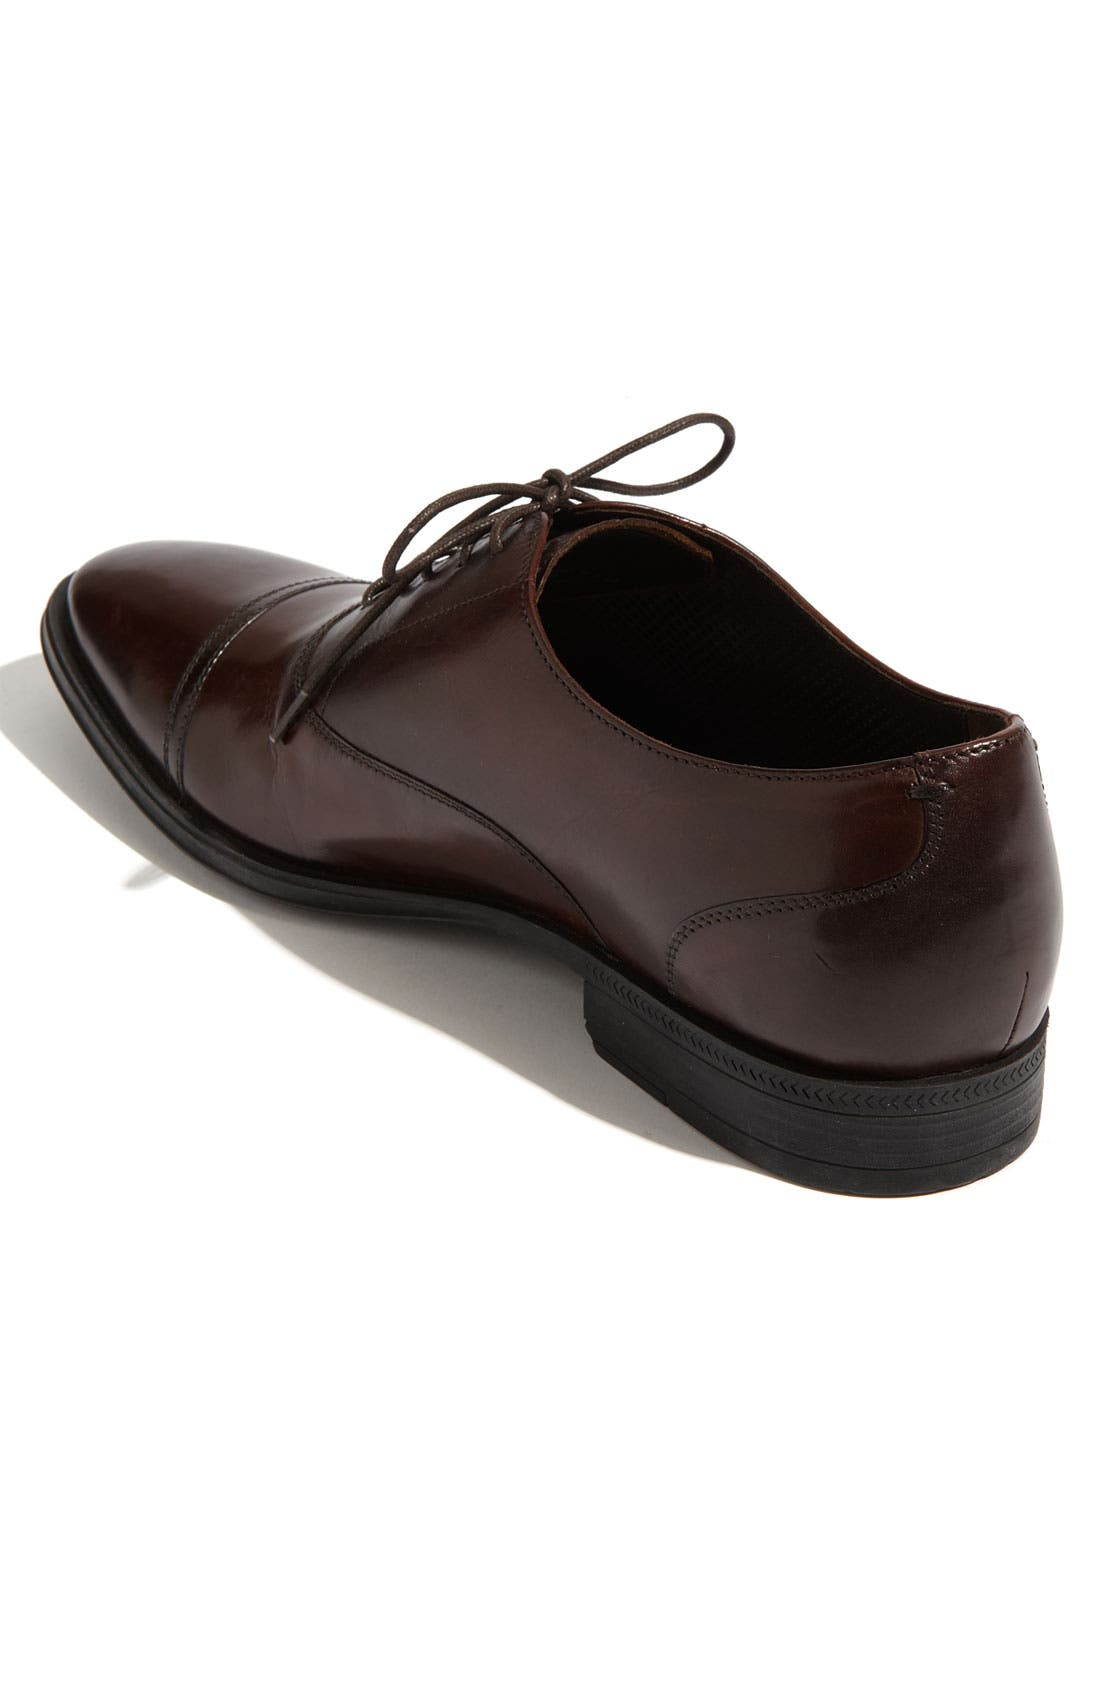 Alternate Image 2  - Cole Haan 'Air Adams' Cap Toe Oxford (Online Exclusive)